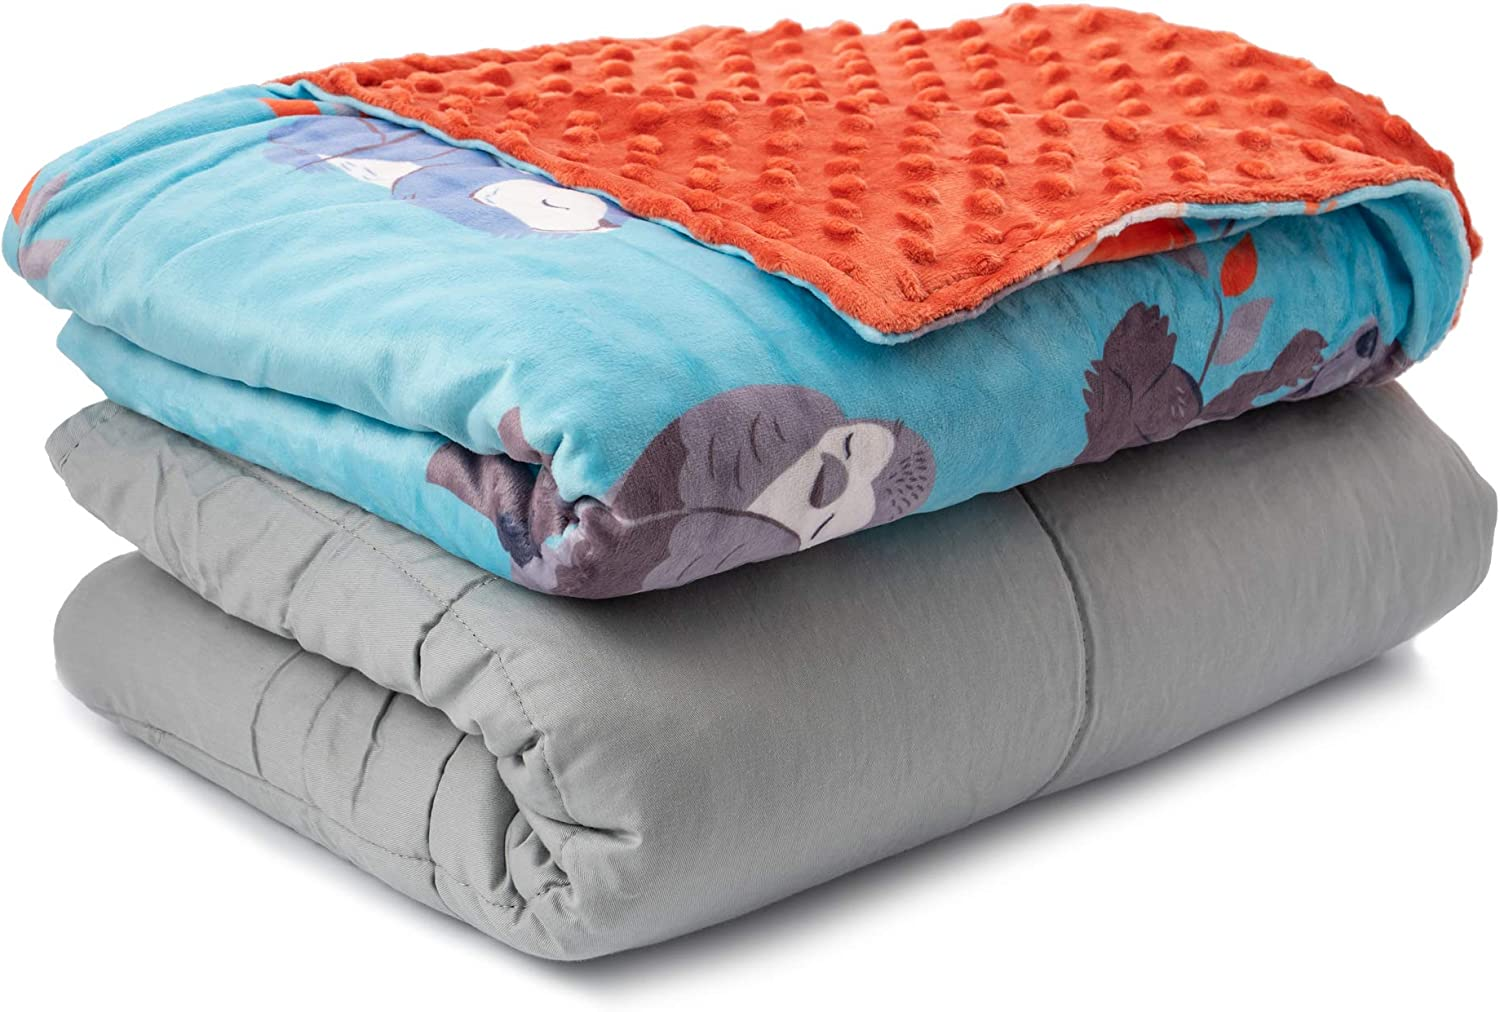 Sweetzer & Orange Weighted Blanket for Kids 7lbs Heavy Blanket, Best for 58-88lb Children - Warming and Cooling Weighted Comforter with Minky Cover (7lb, Sleepy Animals)